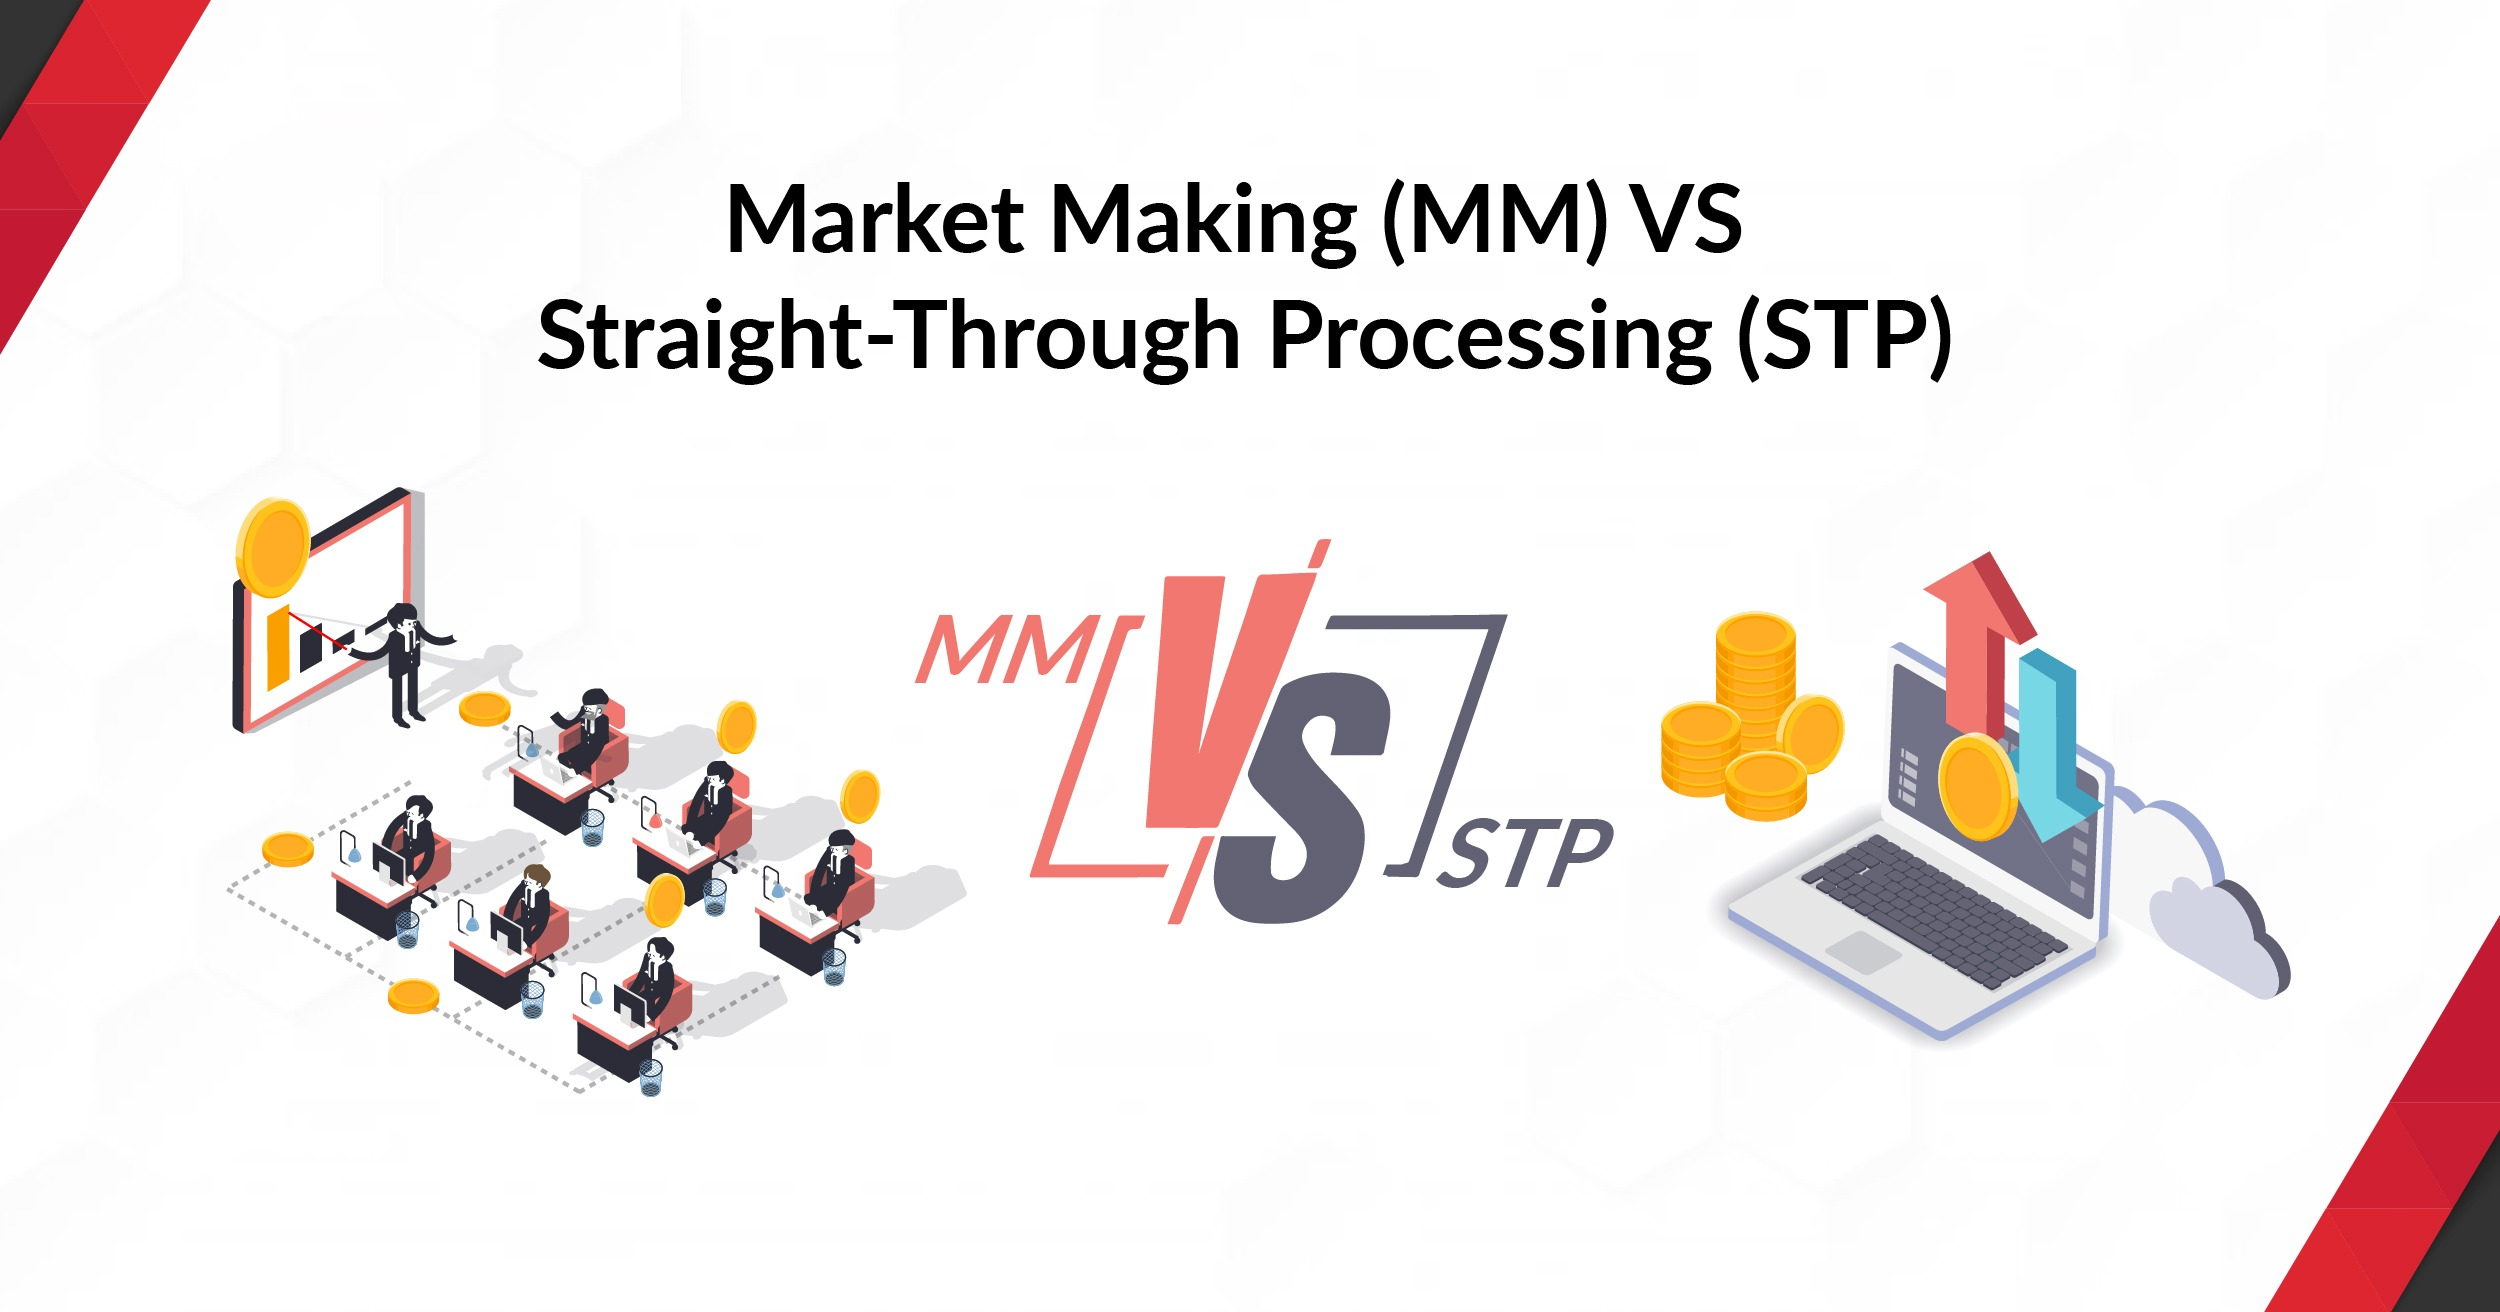 MM vs STP